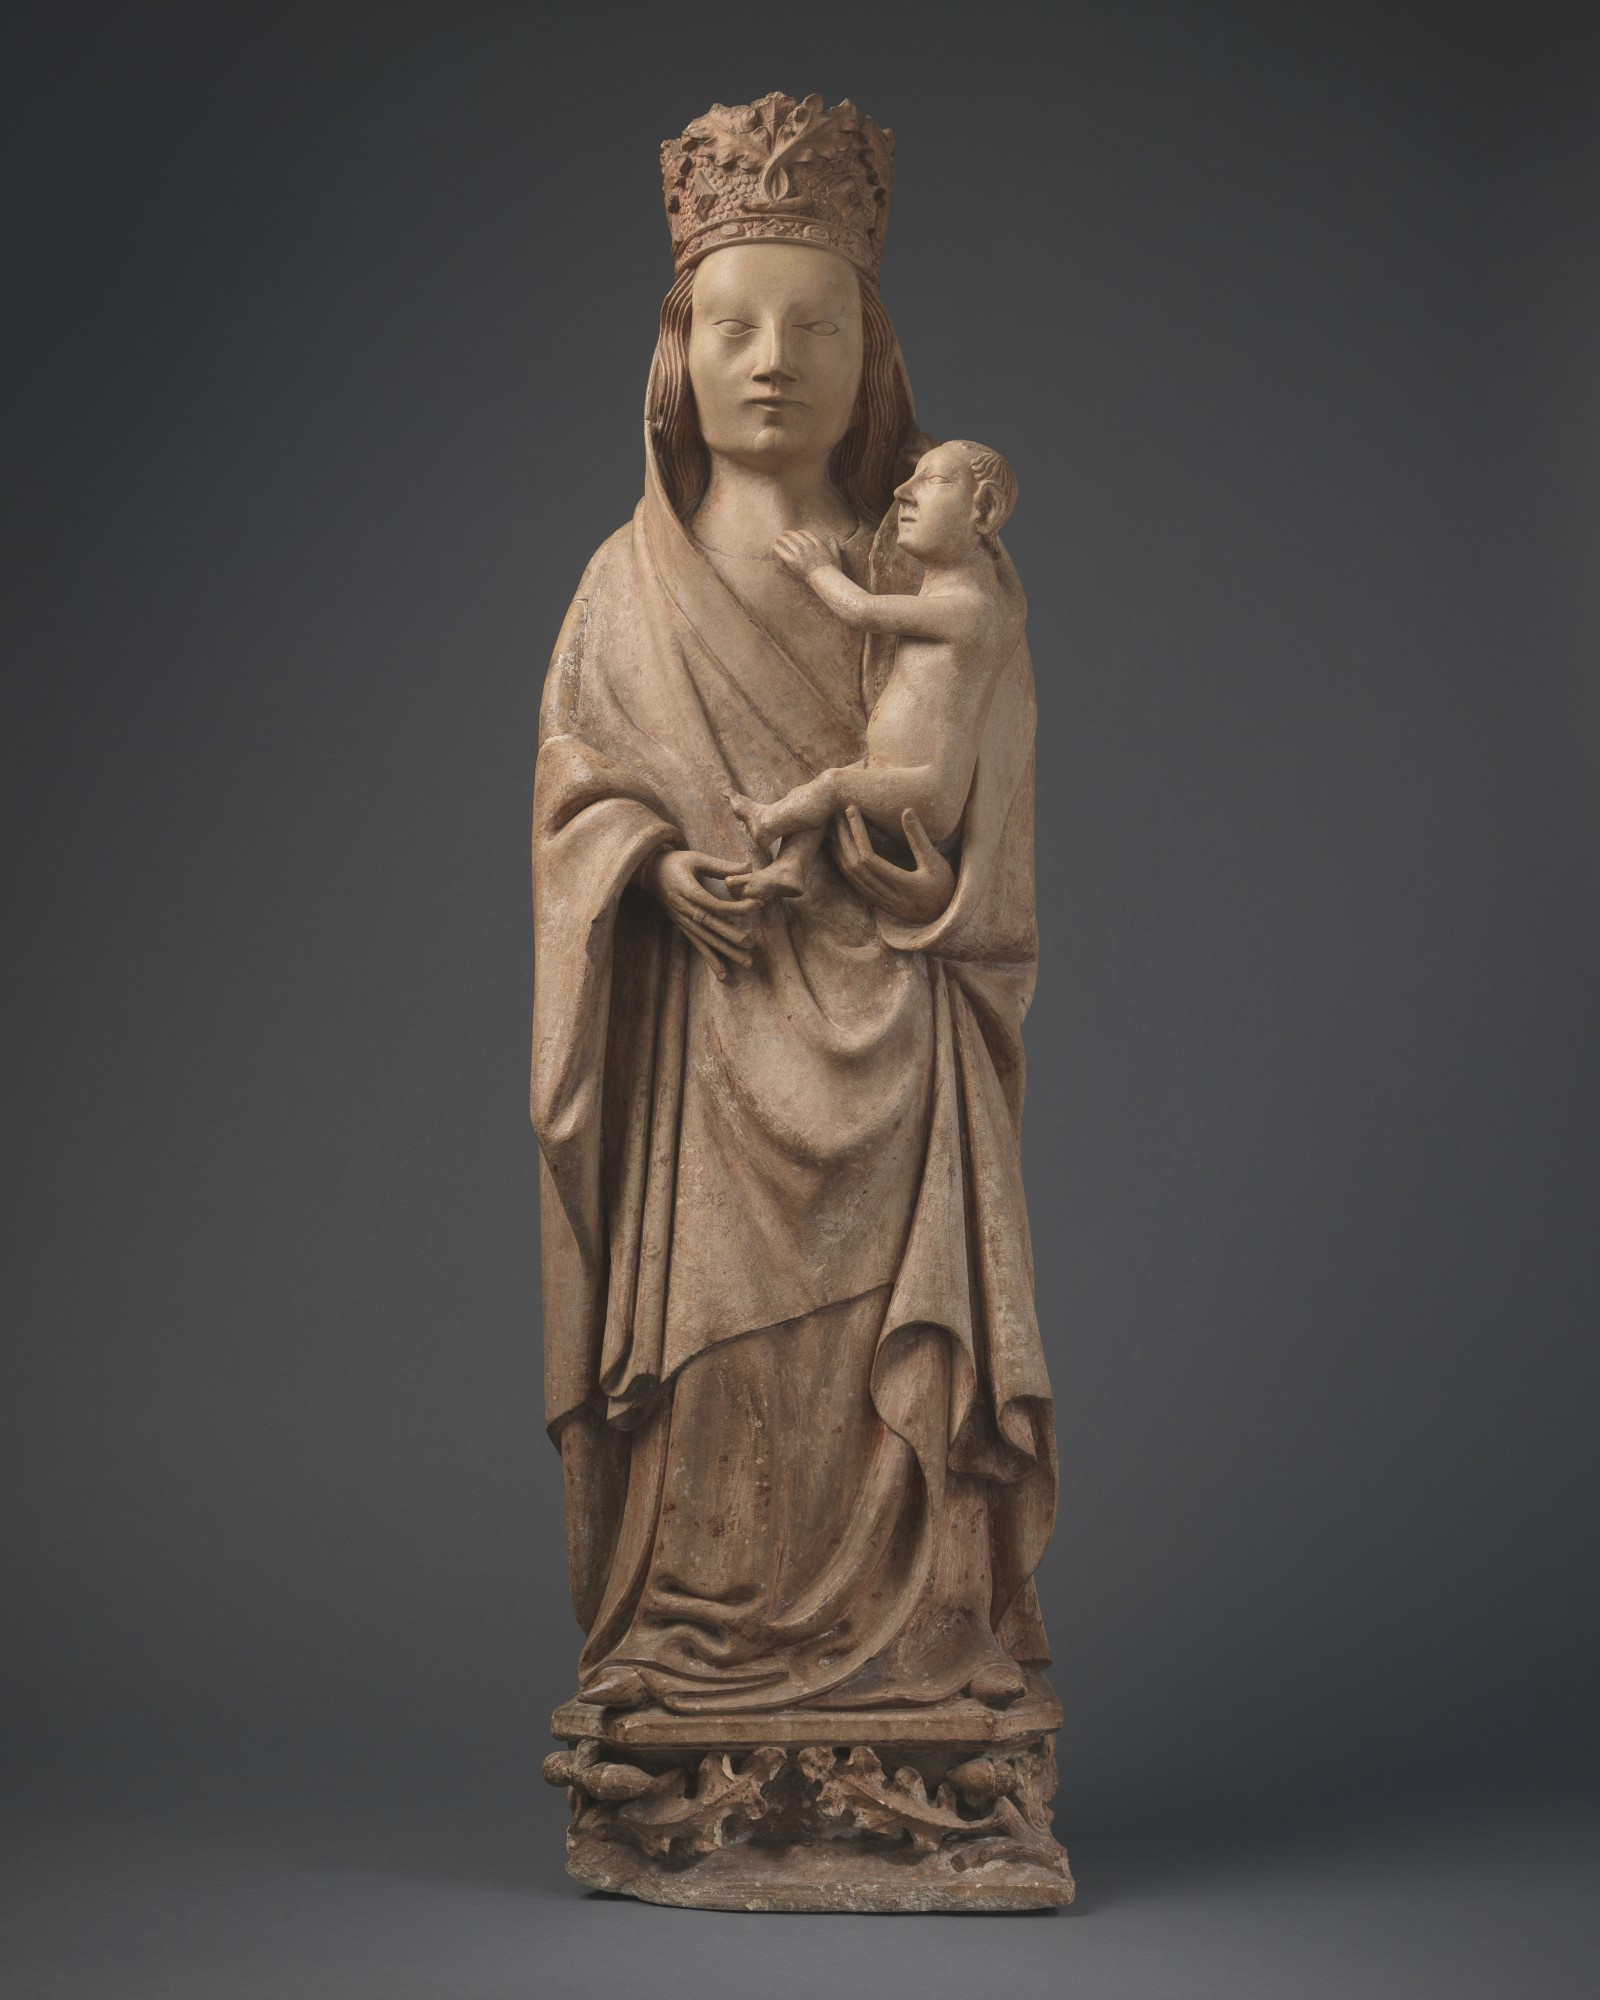 Virgin and Child, France, Basse-Normandie, Cotentin, c. 1400